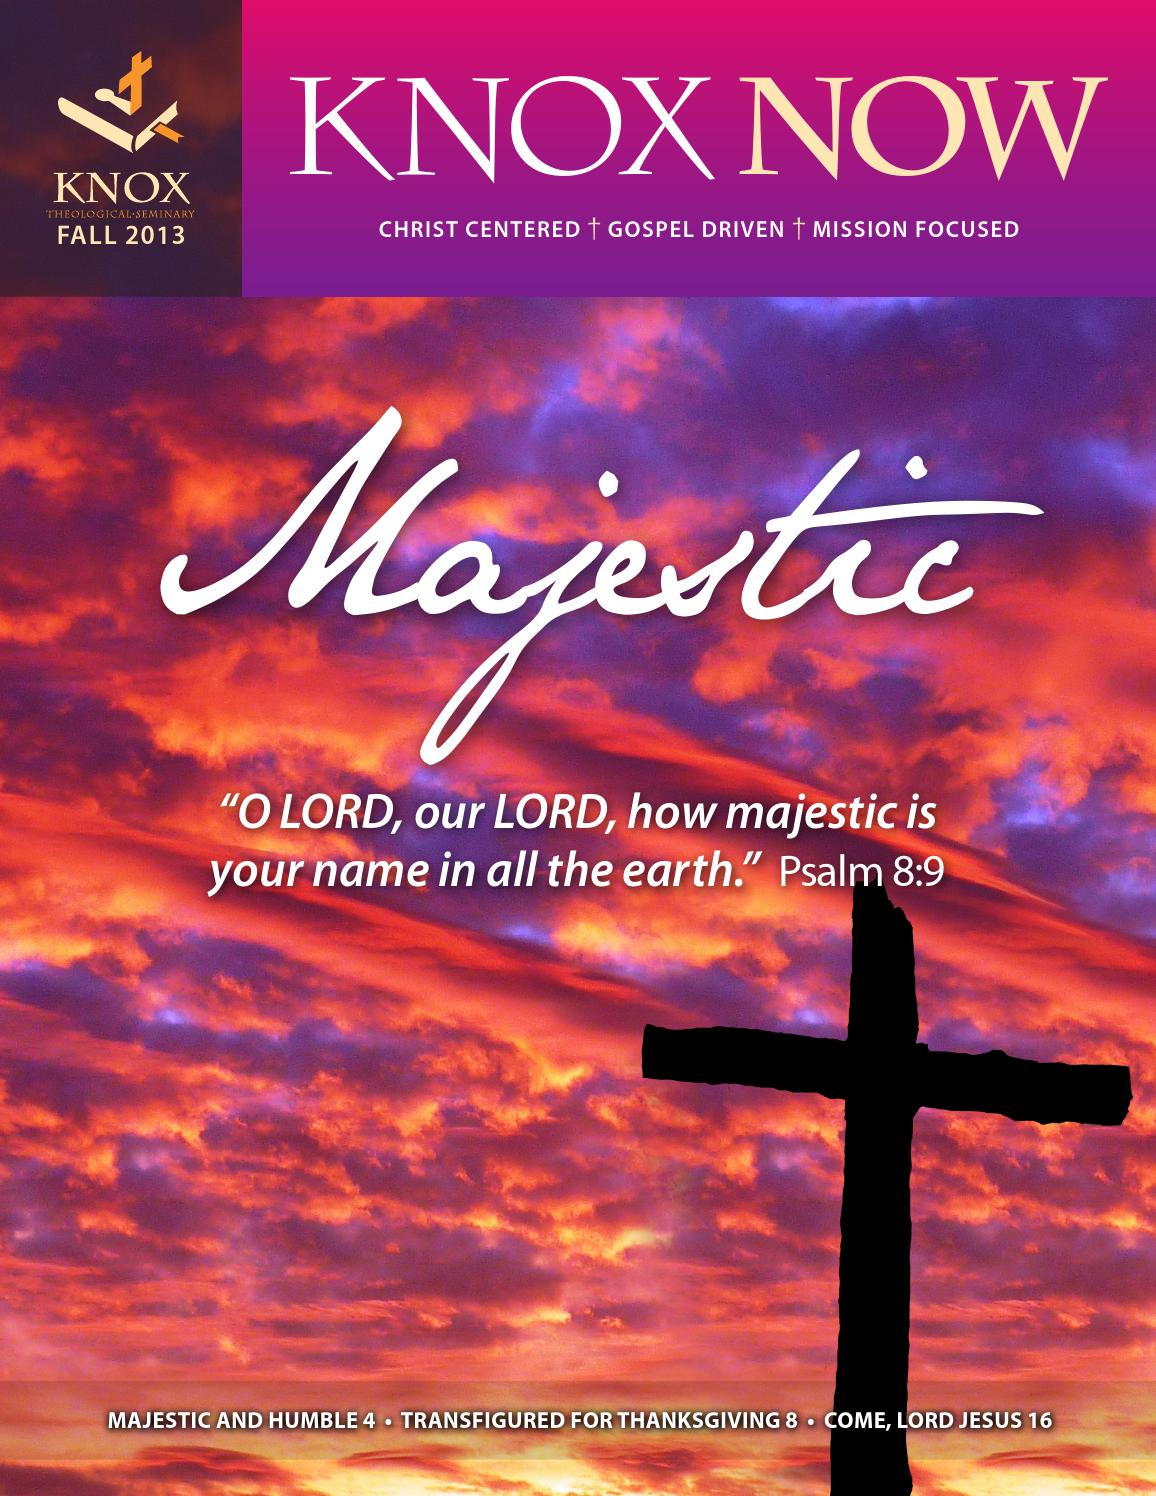 Knox Now Magazine - Fall 2013 by Knox Theological Seminary - issuu